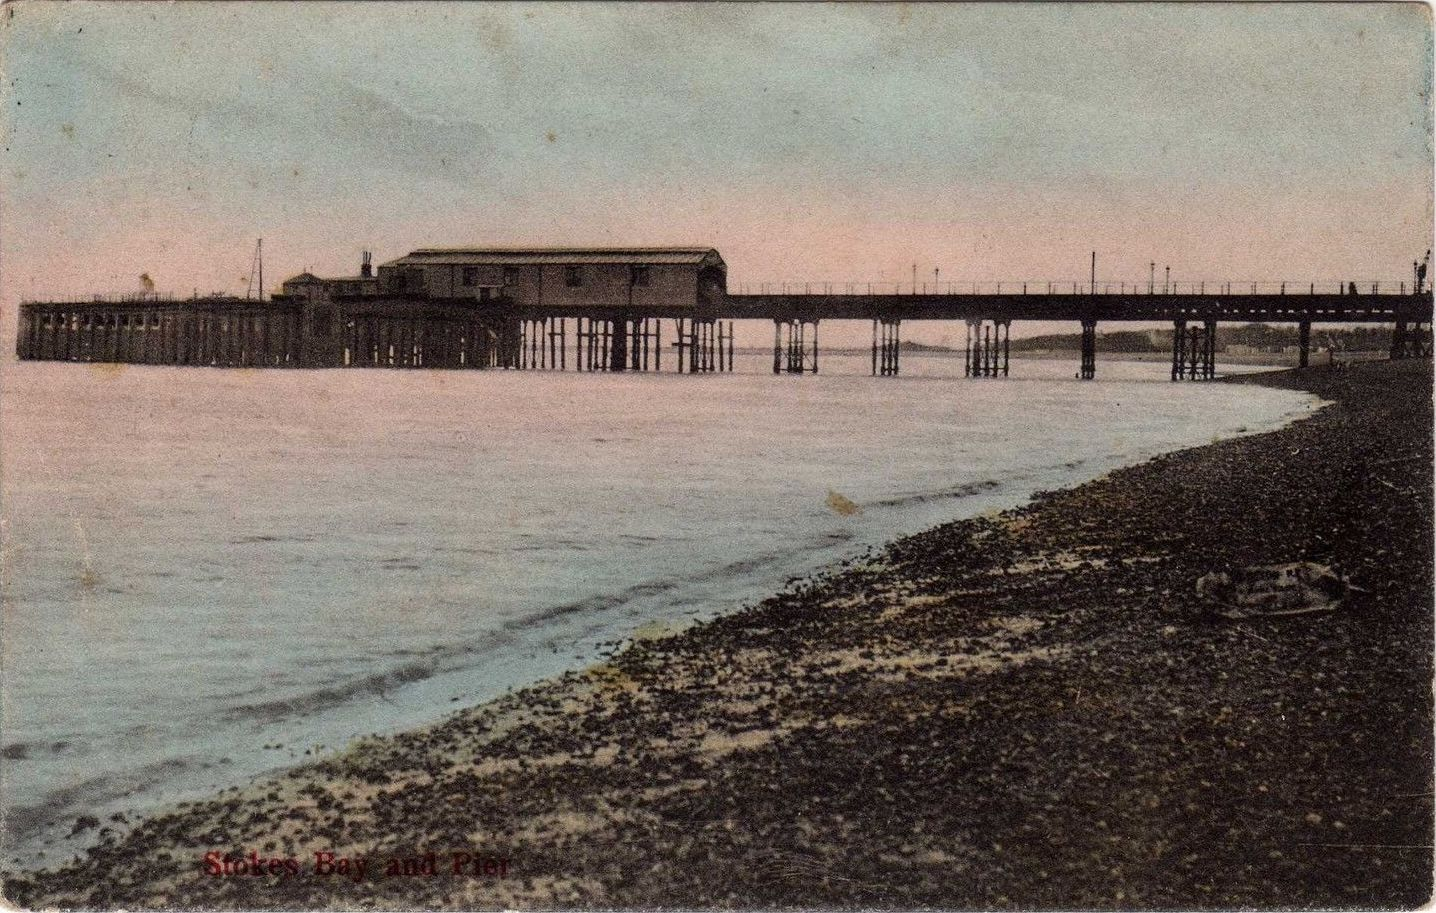 Tinted Postcard of Stokes Bay Pier